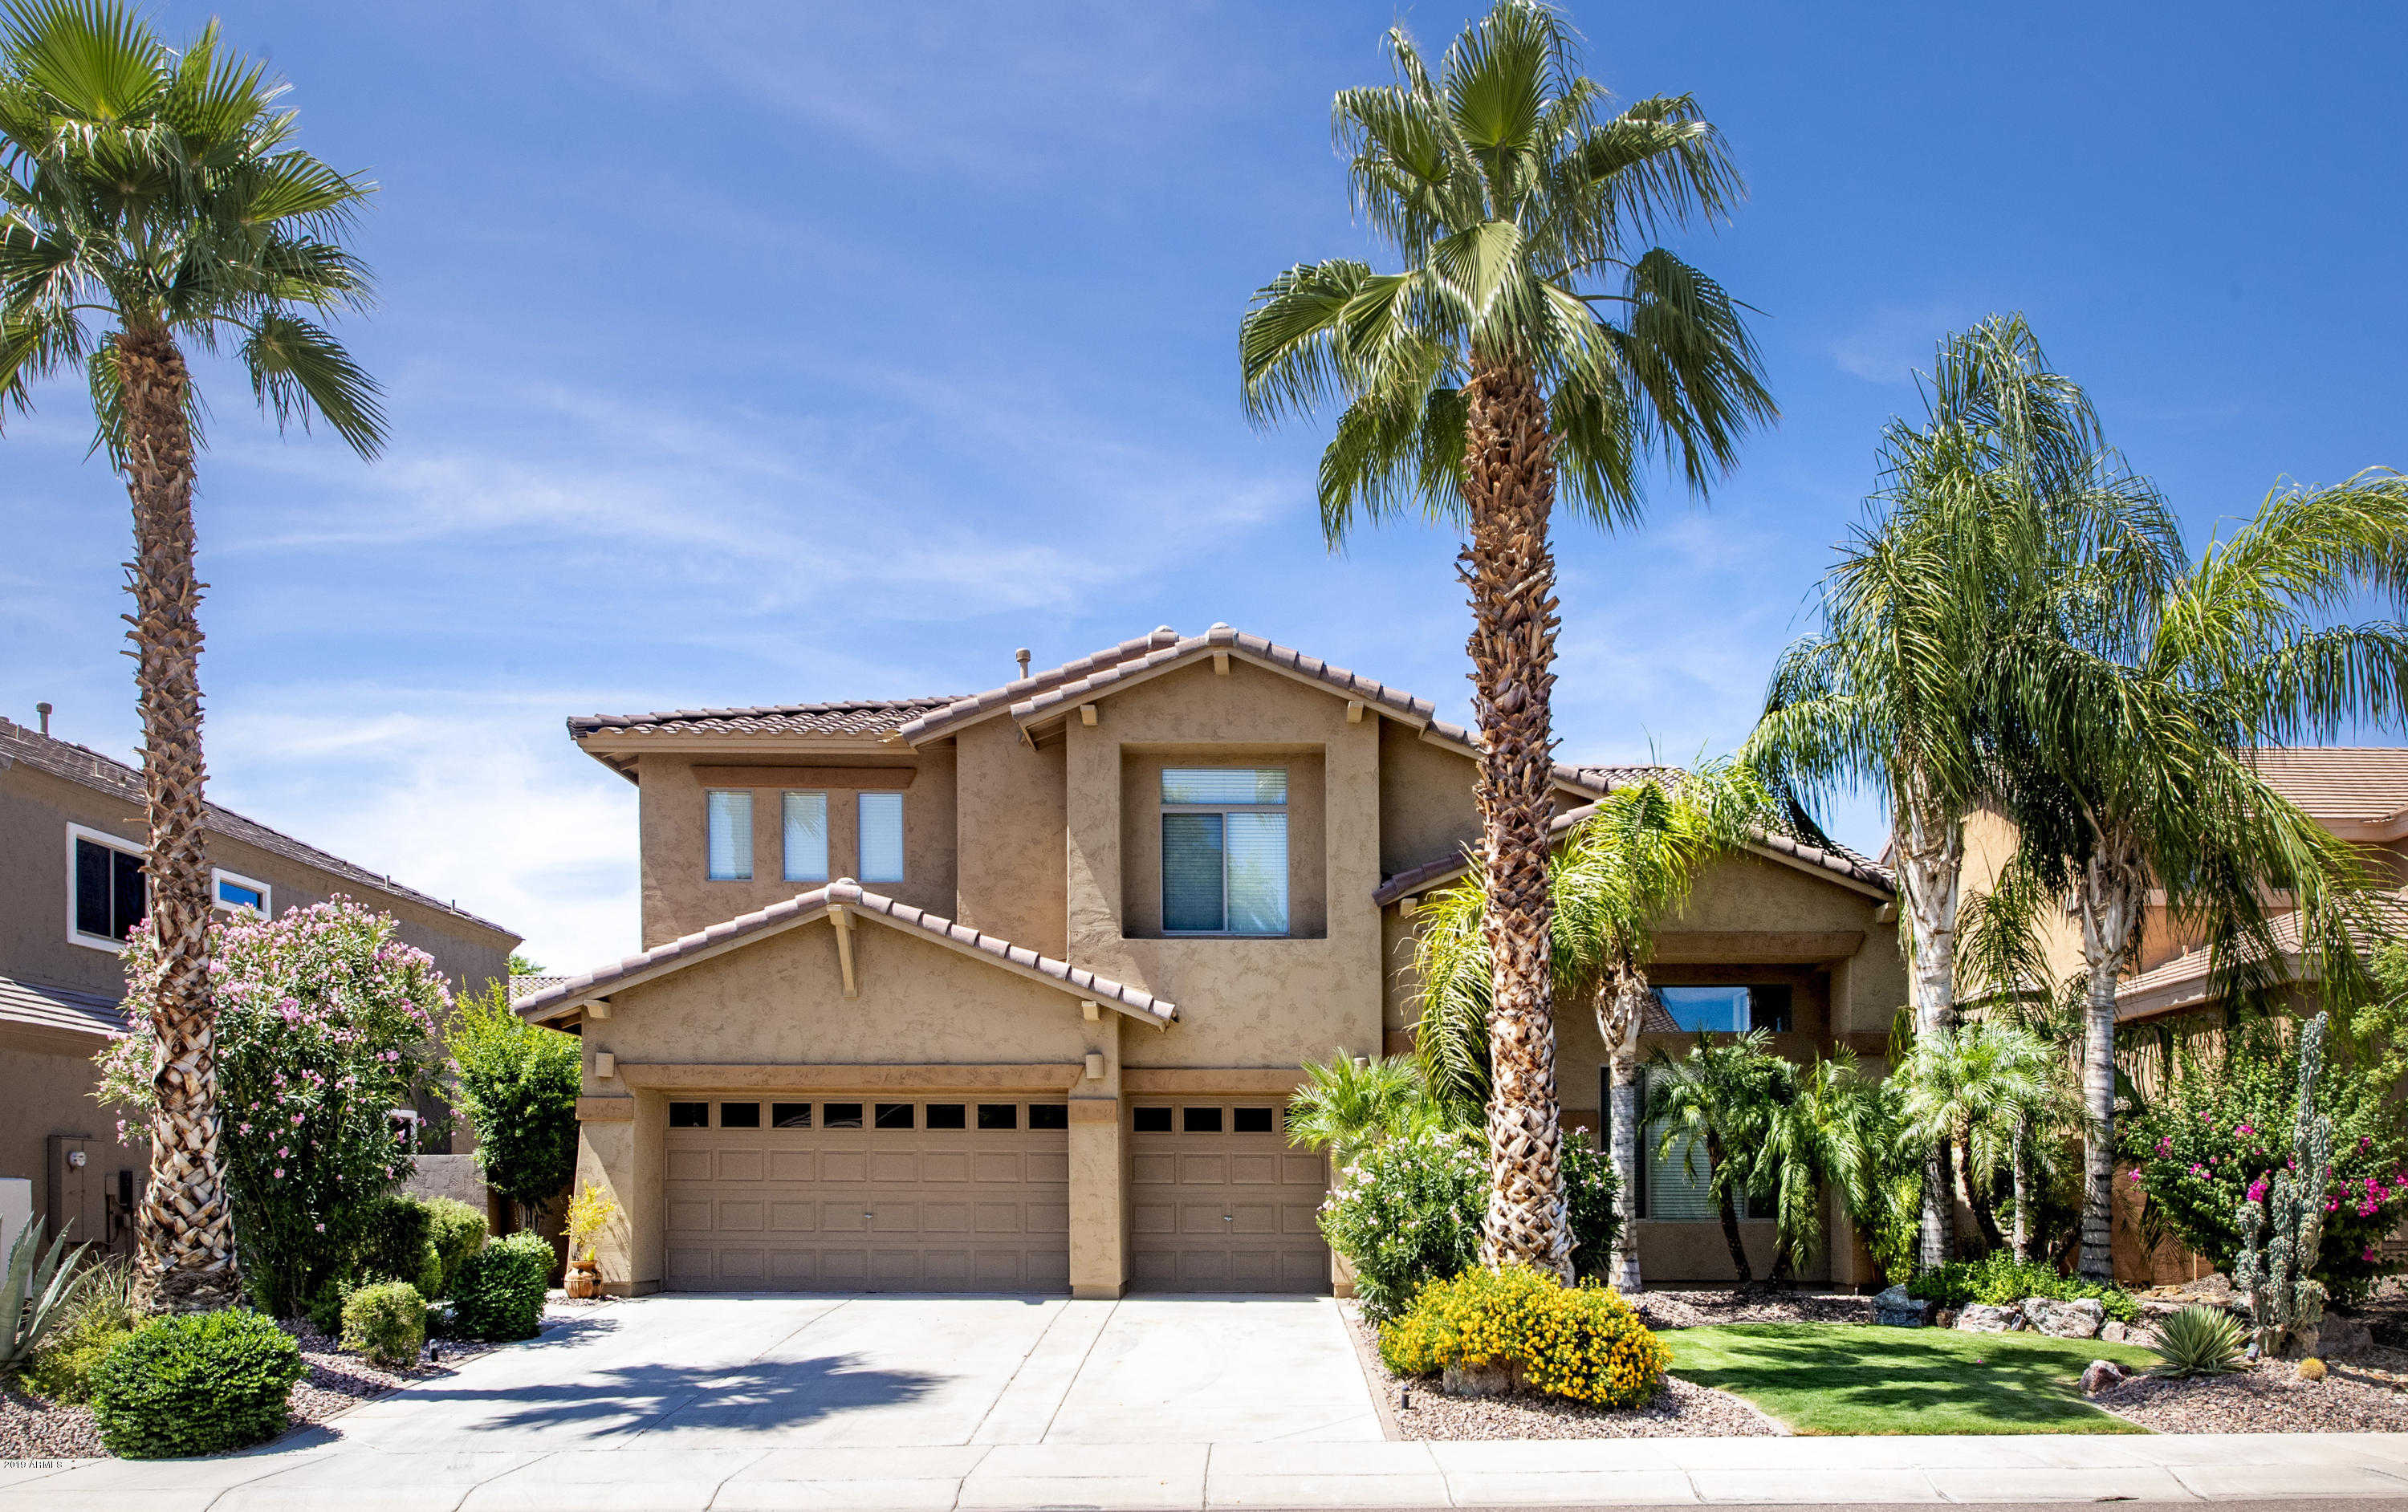 $488,000 - 4Br/3Ba - Home for Sale in Stetson Valley Parcels 7 8 9 10, Phoenix